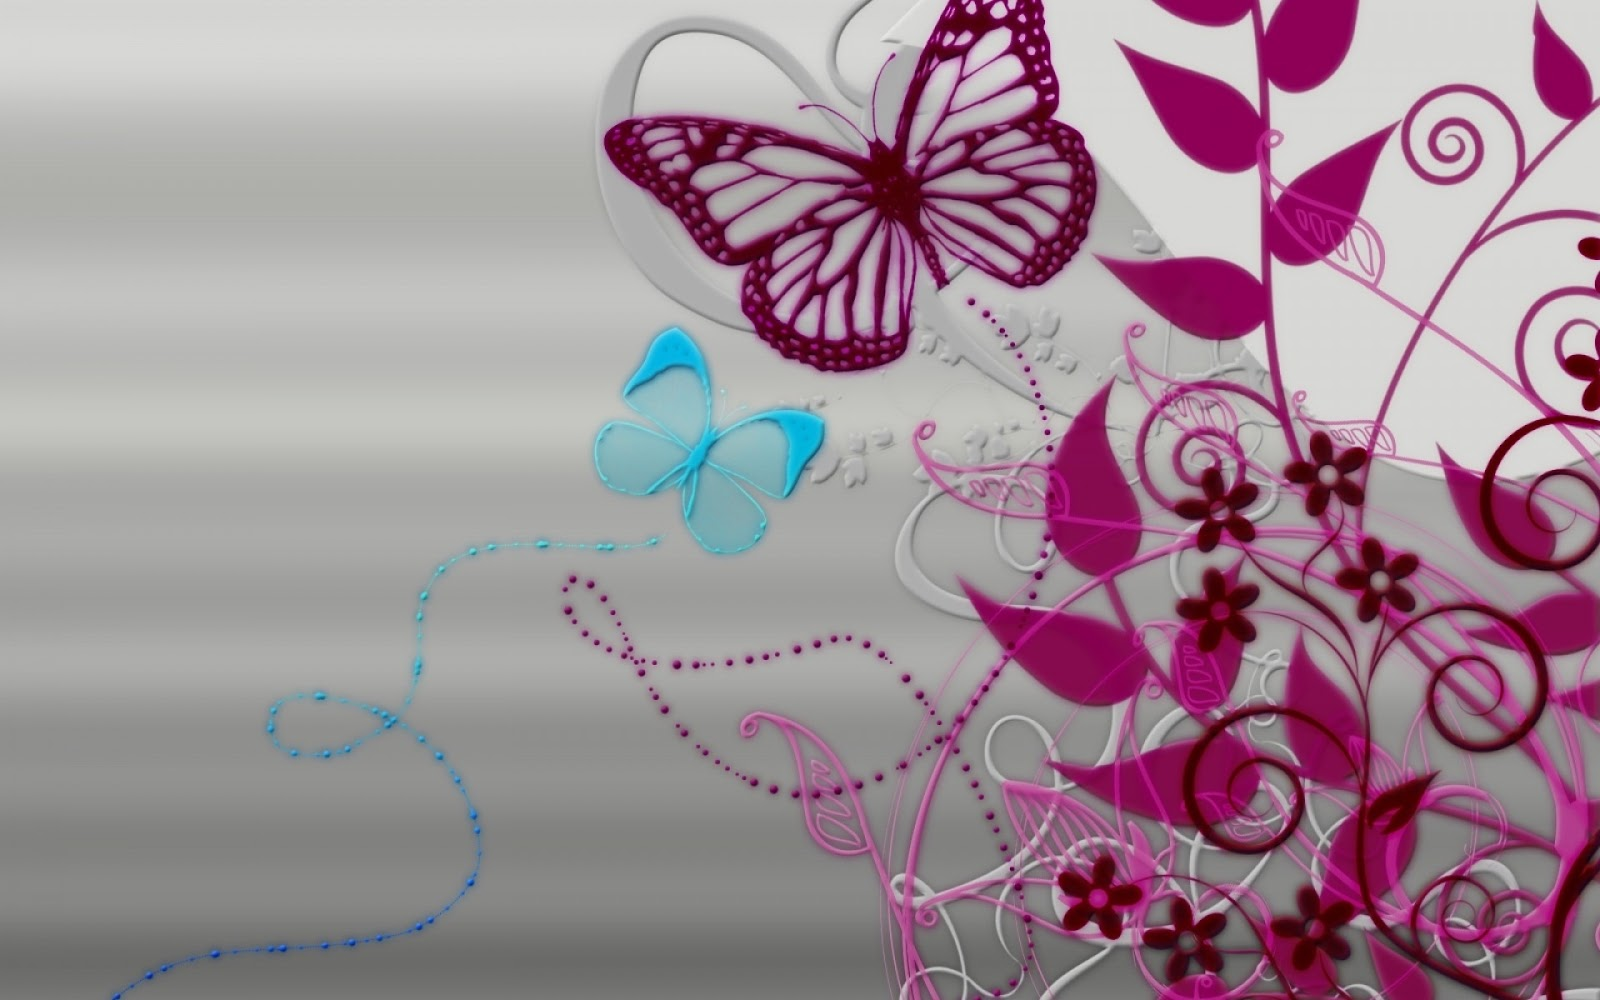 Butterfly Wallpaper 9 With 1600 x 1000 Resolution ( 183kB )